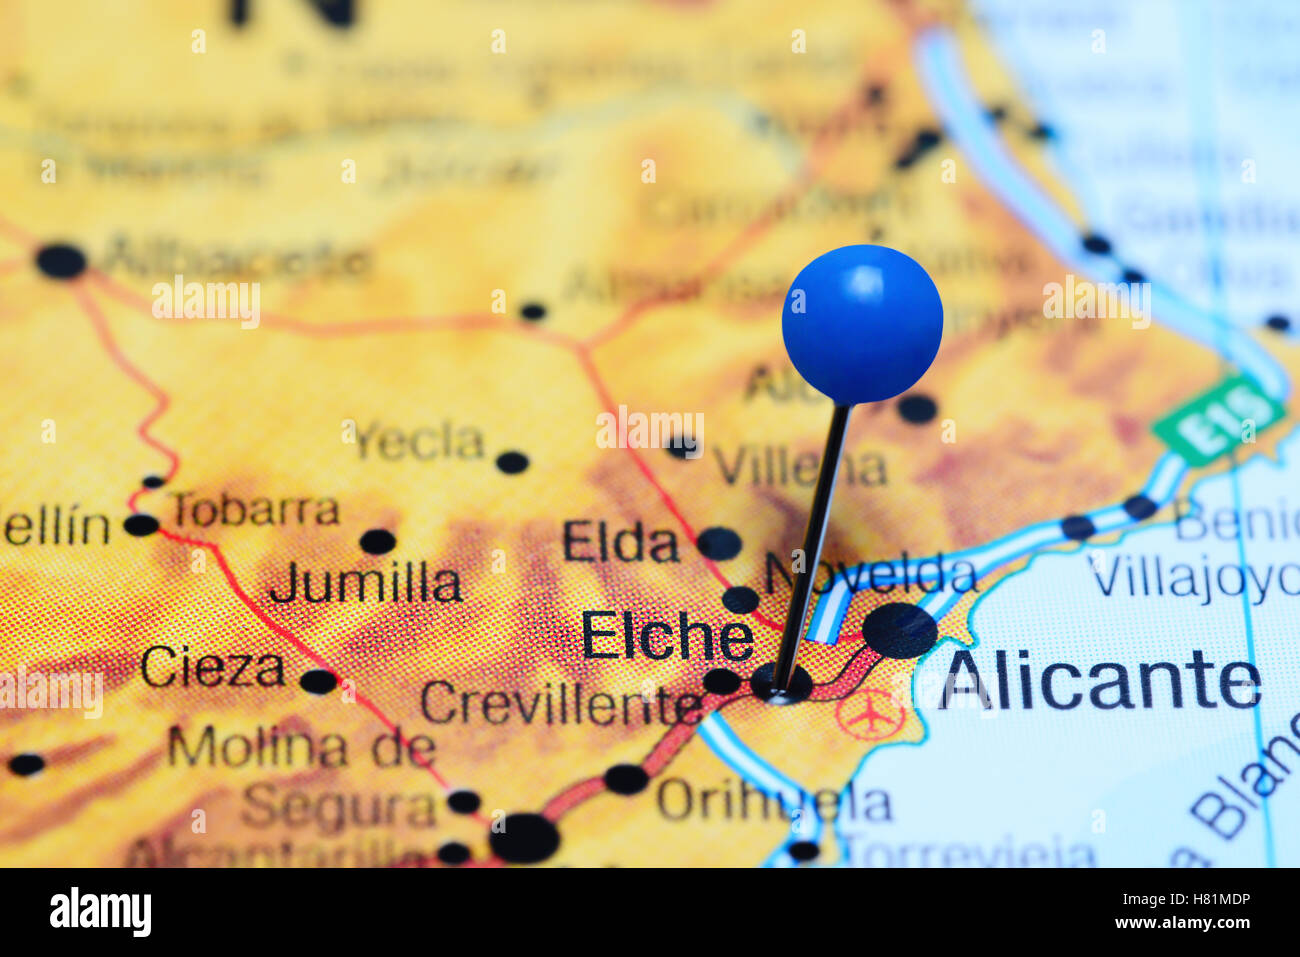 Elche Pinned On A Map Of Spain Stock Photo 125427842 Alamy